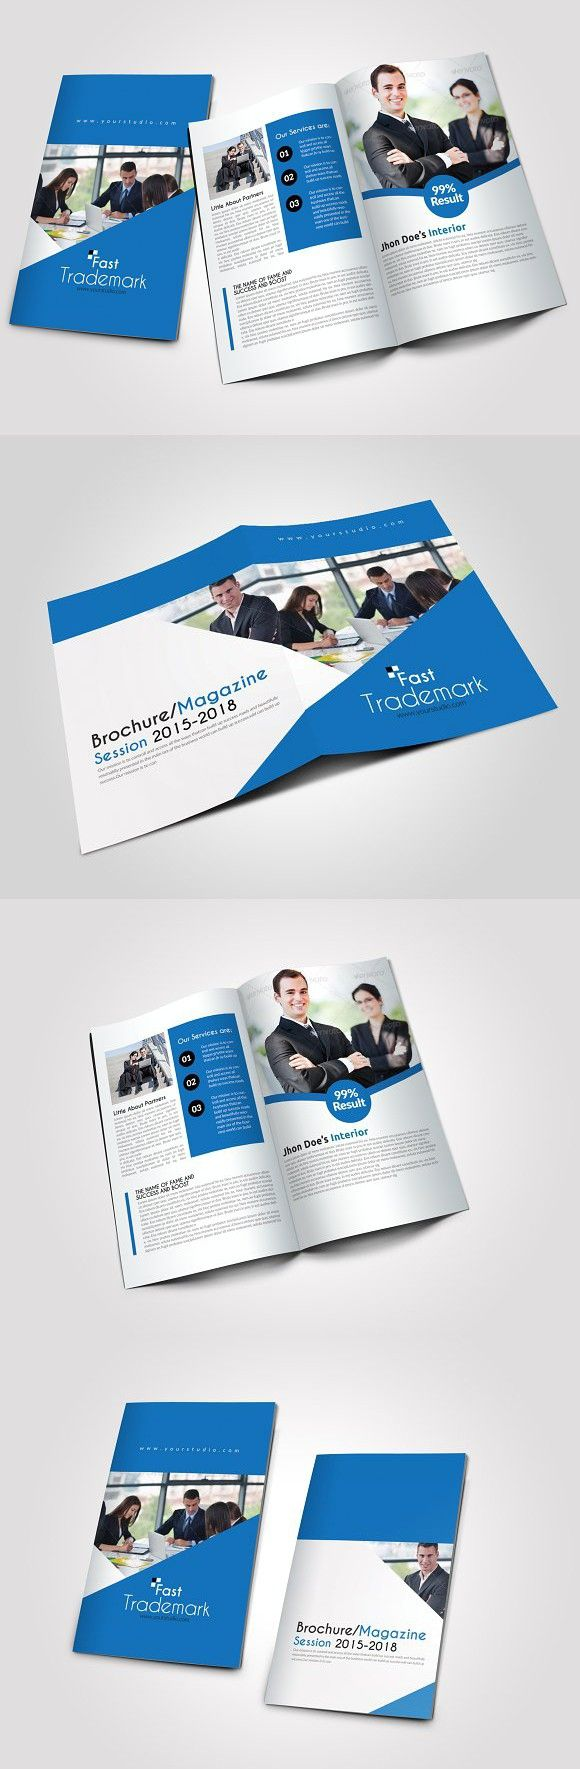 6541 best creative business card templates images on pinterest 4 pages business bi fold brochure creative business card templates fbccfo Gallery